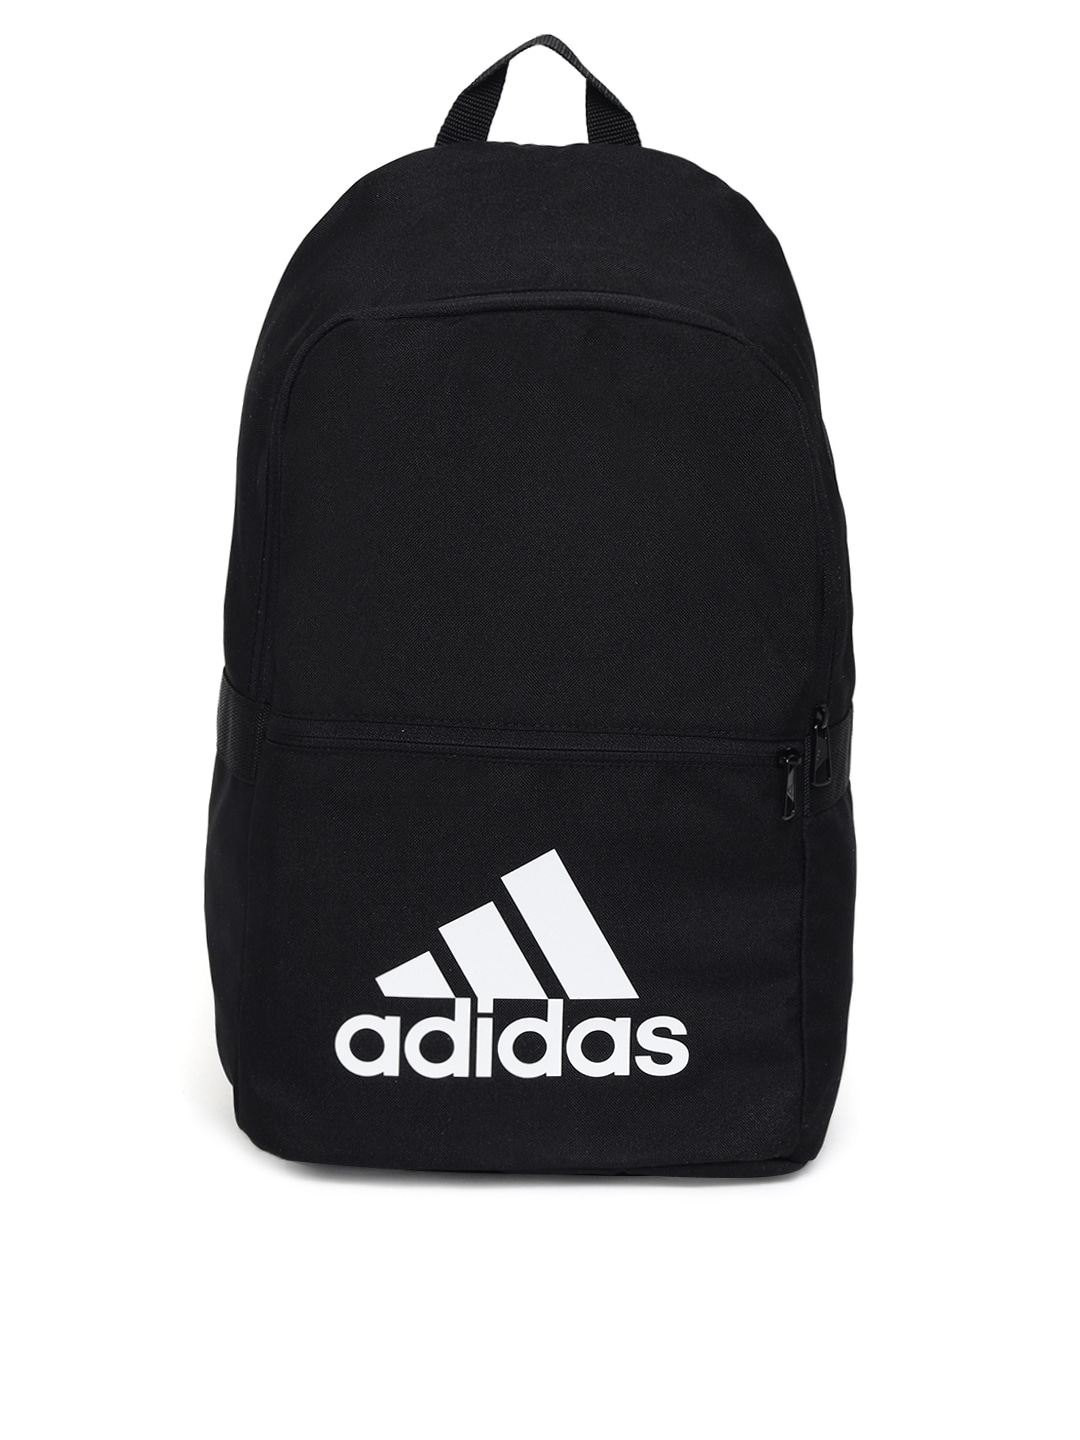 55c641744f Adidas Black Bags Backpacks - Buy Adidas Black Bags Backpacks online in  India